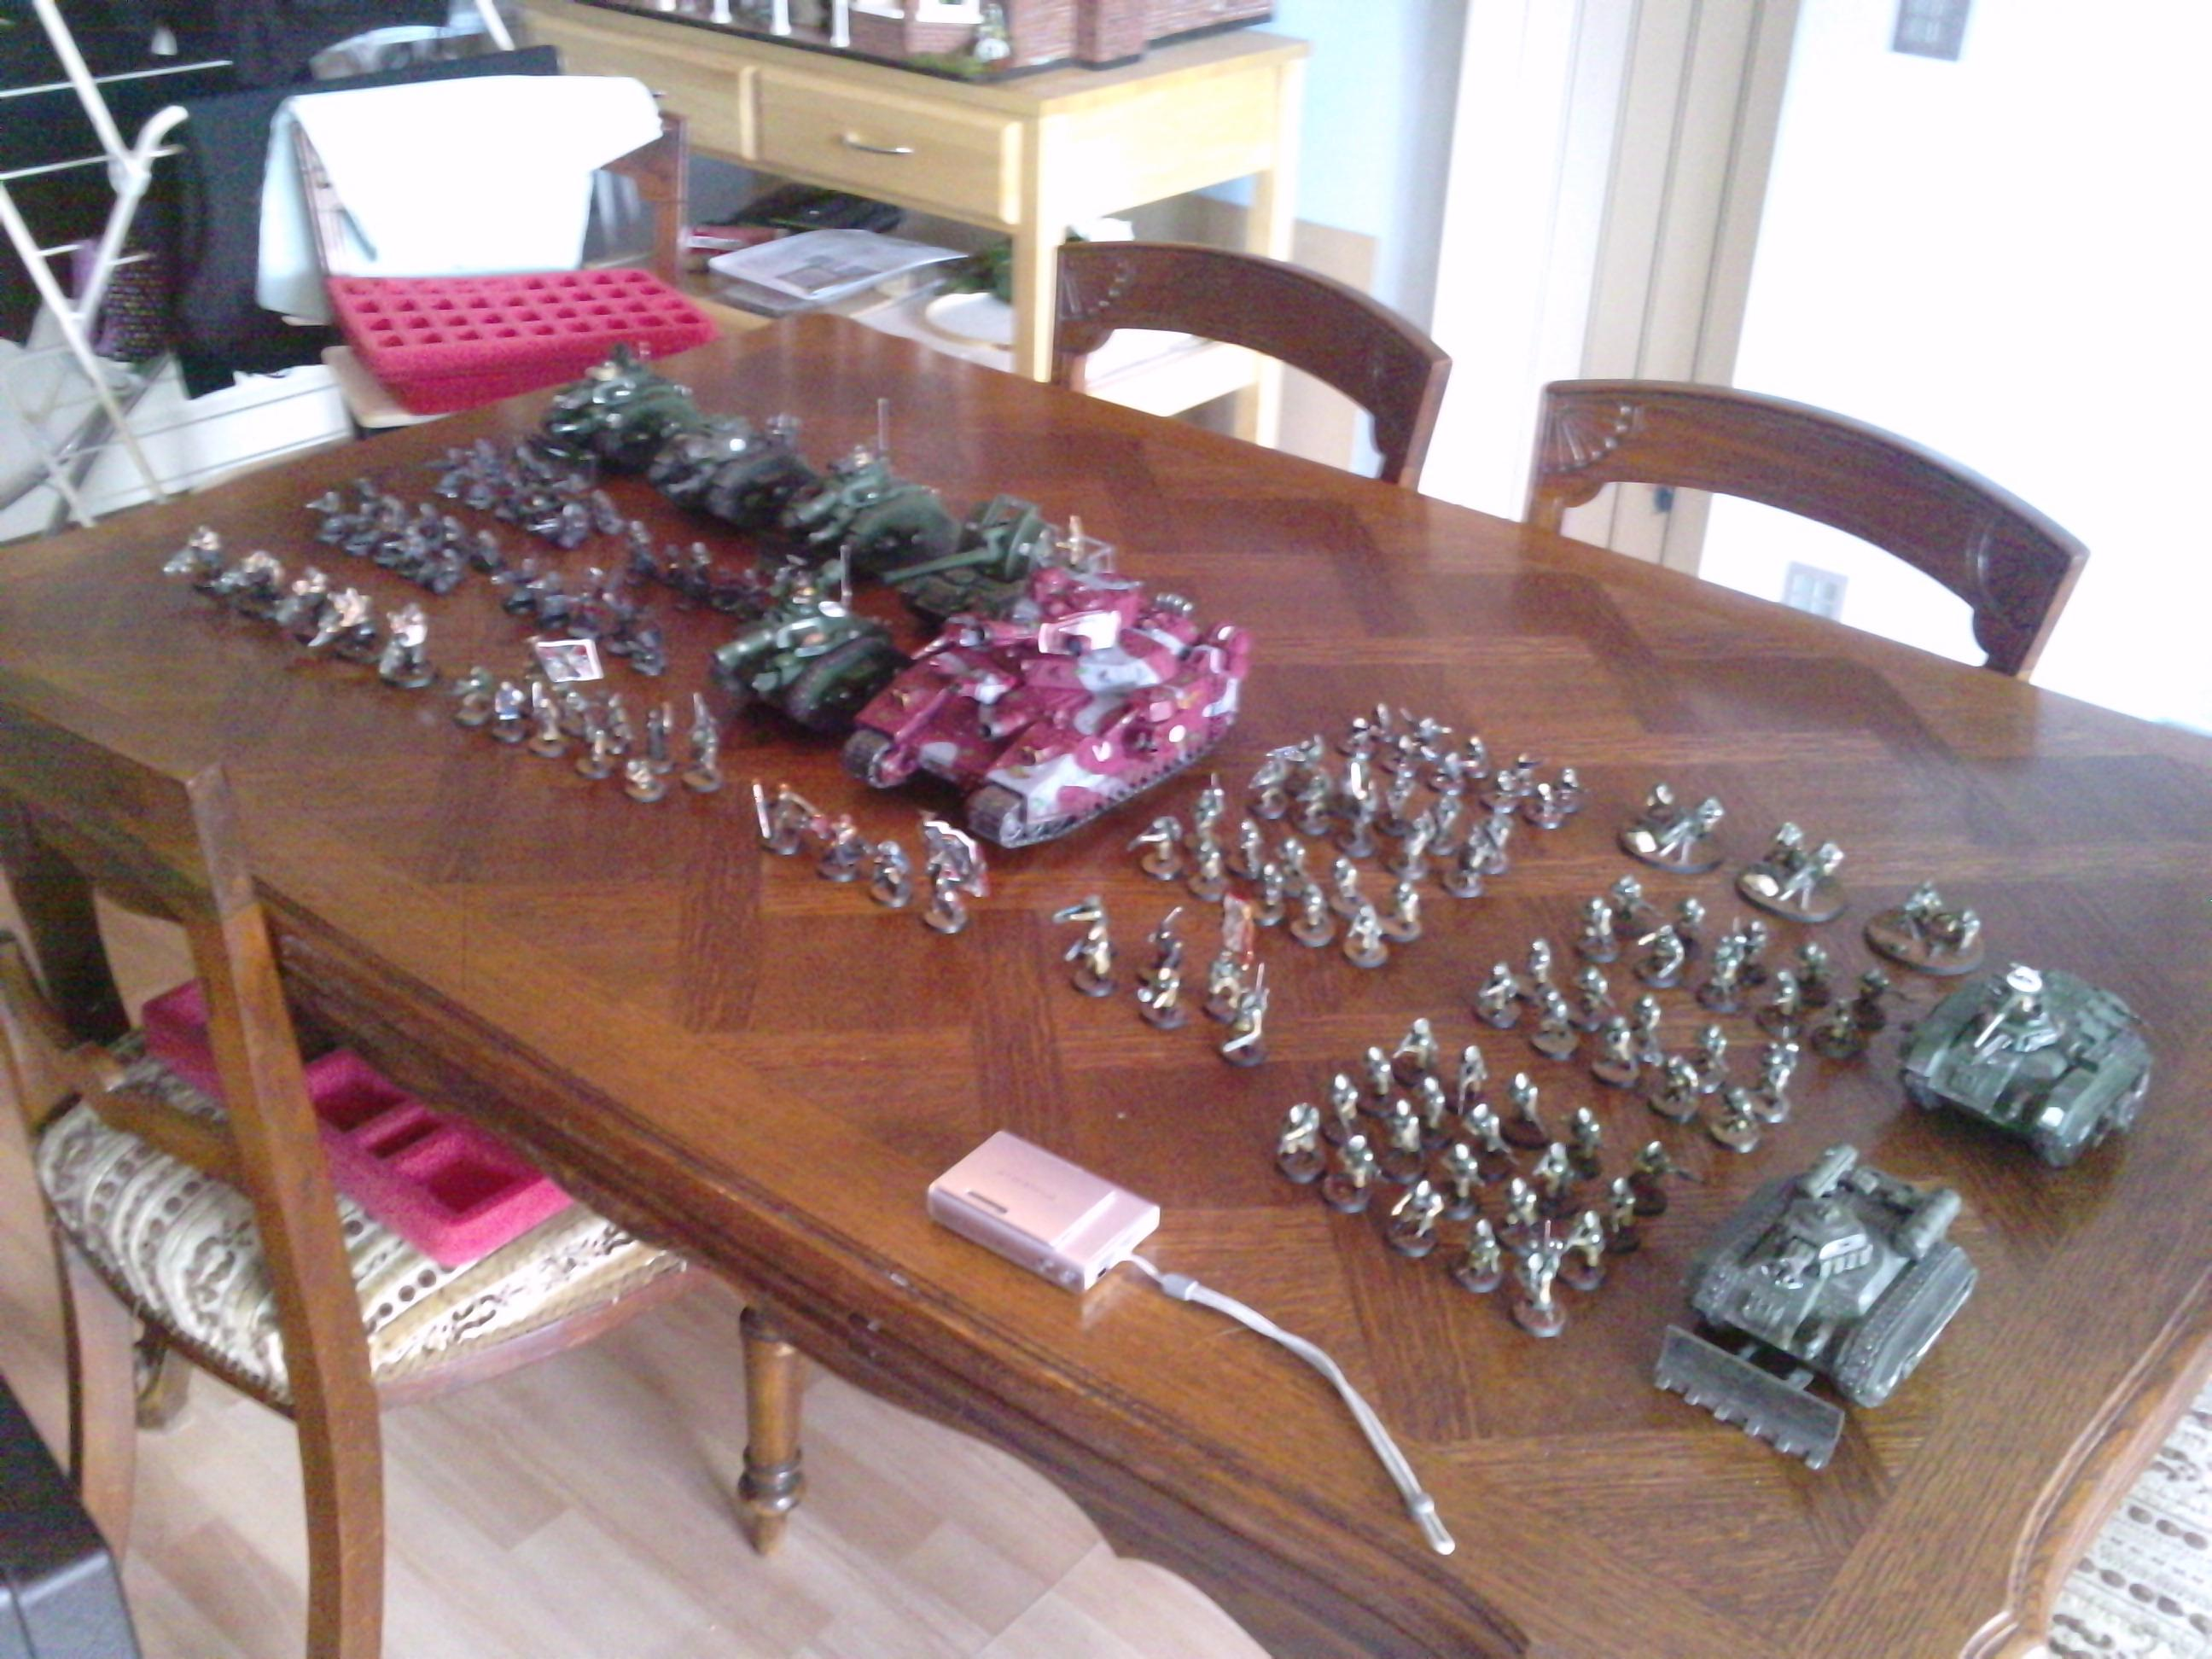 Baneblade, Death Korps of Krieg, Entire Collection, Imperial Guard, Leman Russ, Mass Army, Warhammer 40,000